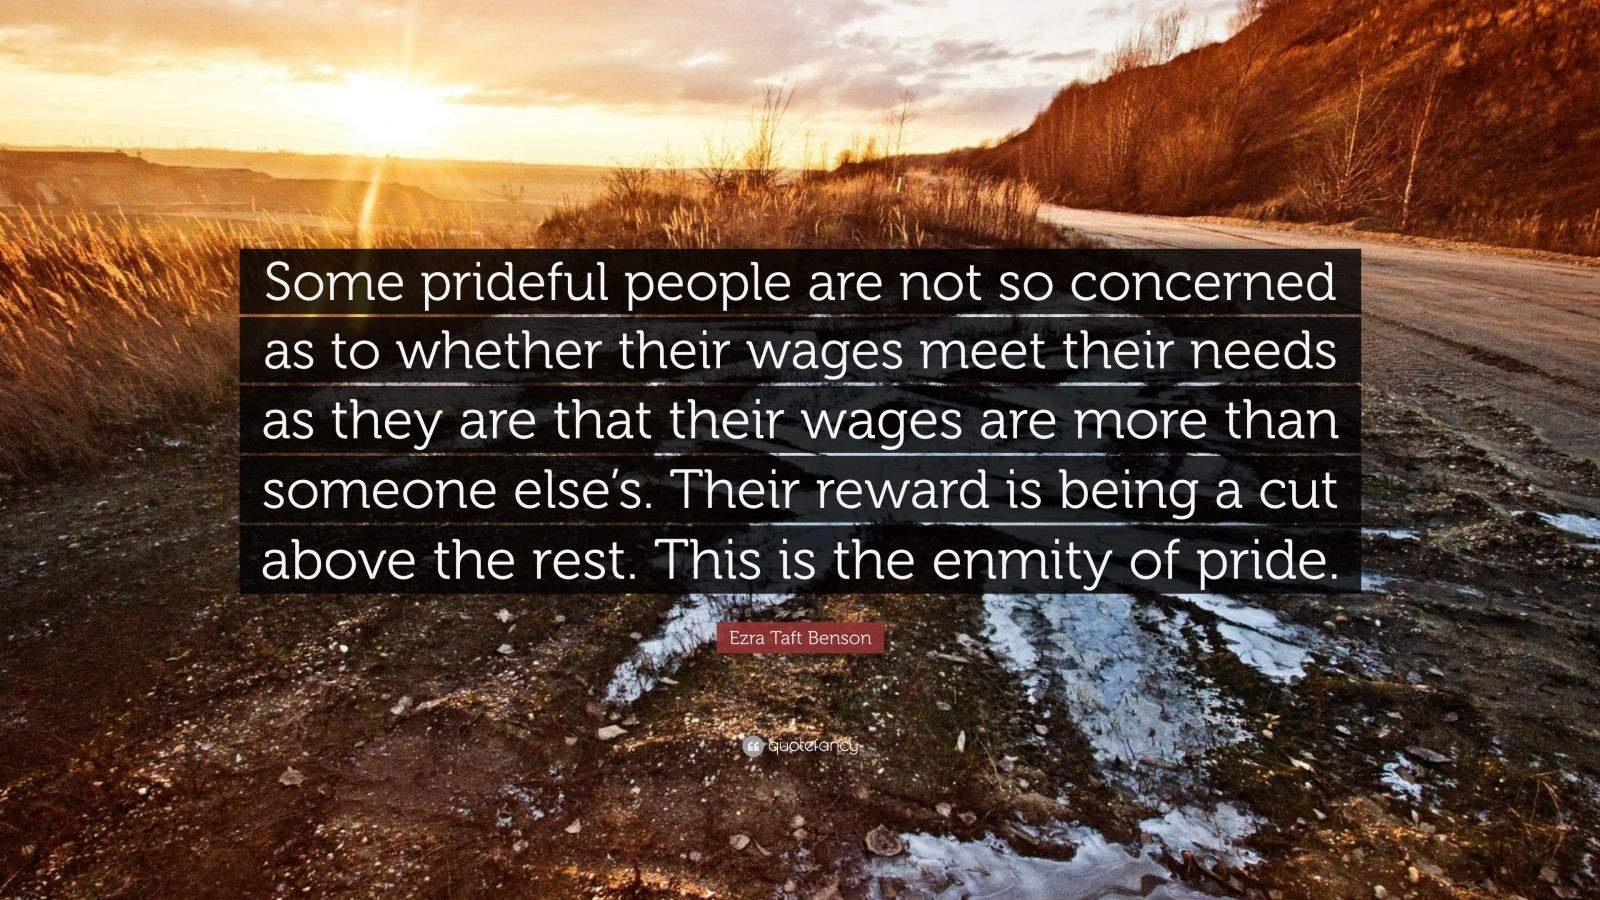 "Ezra Taft Benson Quote: ""Some prideful people are not so concerned as to whether their wages meet their needs as they are that their wages are more than someone else's. Their reward is being a cut above the rest. This is the enmity of pride."""